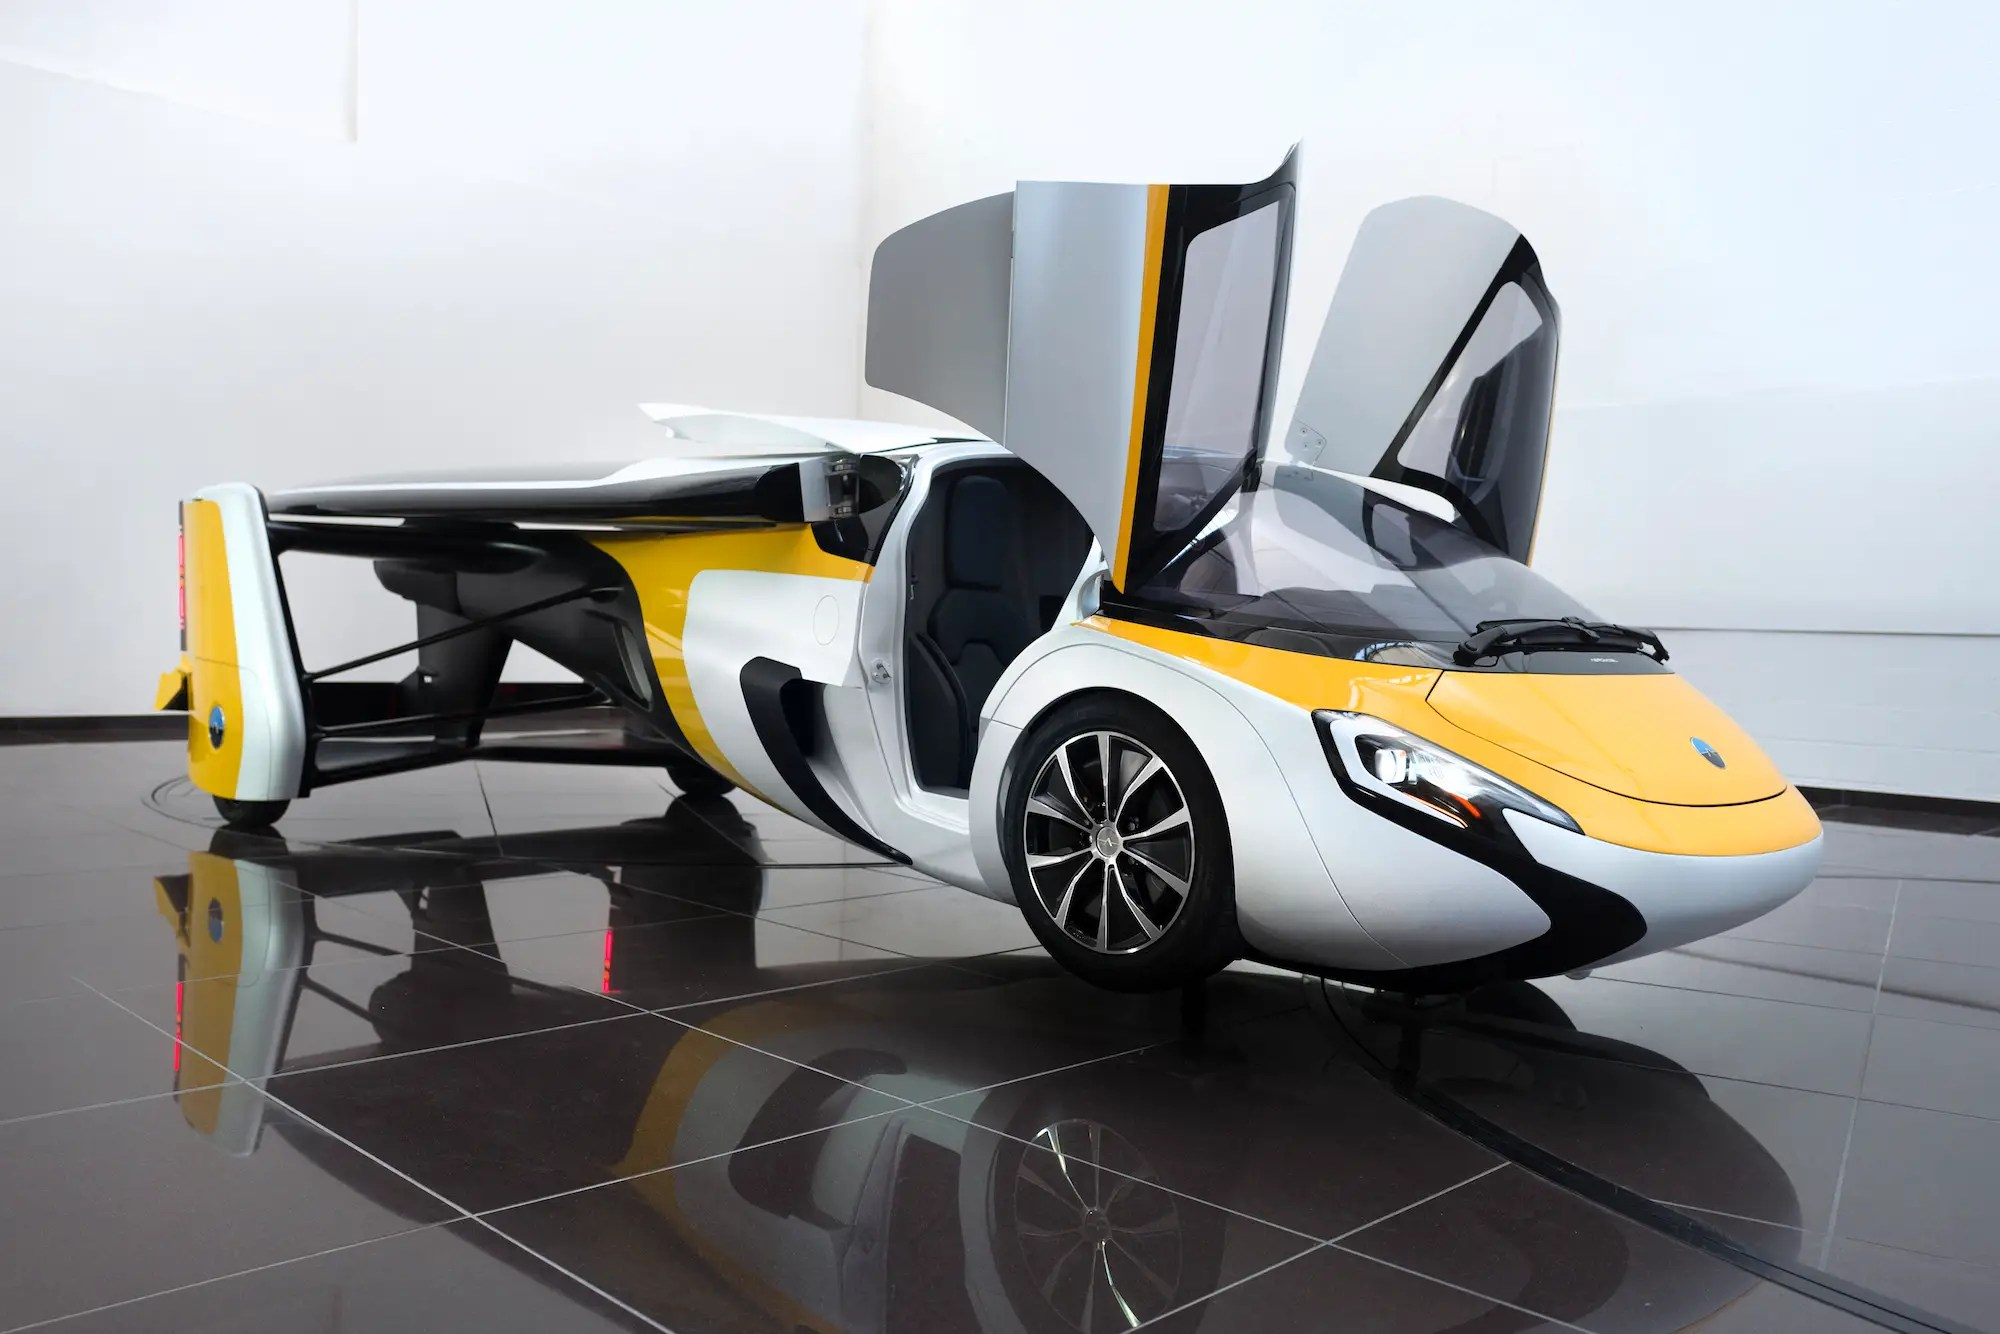 AeroMobil is accepting pre-orders for its flying car, but is only producing 500 units. AeroMobil CEO Juraj Vaculik told Business Insider that the ultimate goal is to launch a version of the vehicle as part of a shared mobility service in the future, but Vaculik said it's too early to get into specifics about that plan.